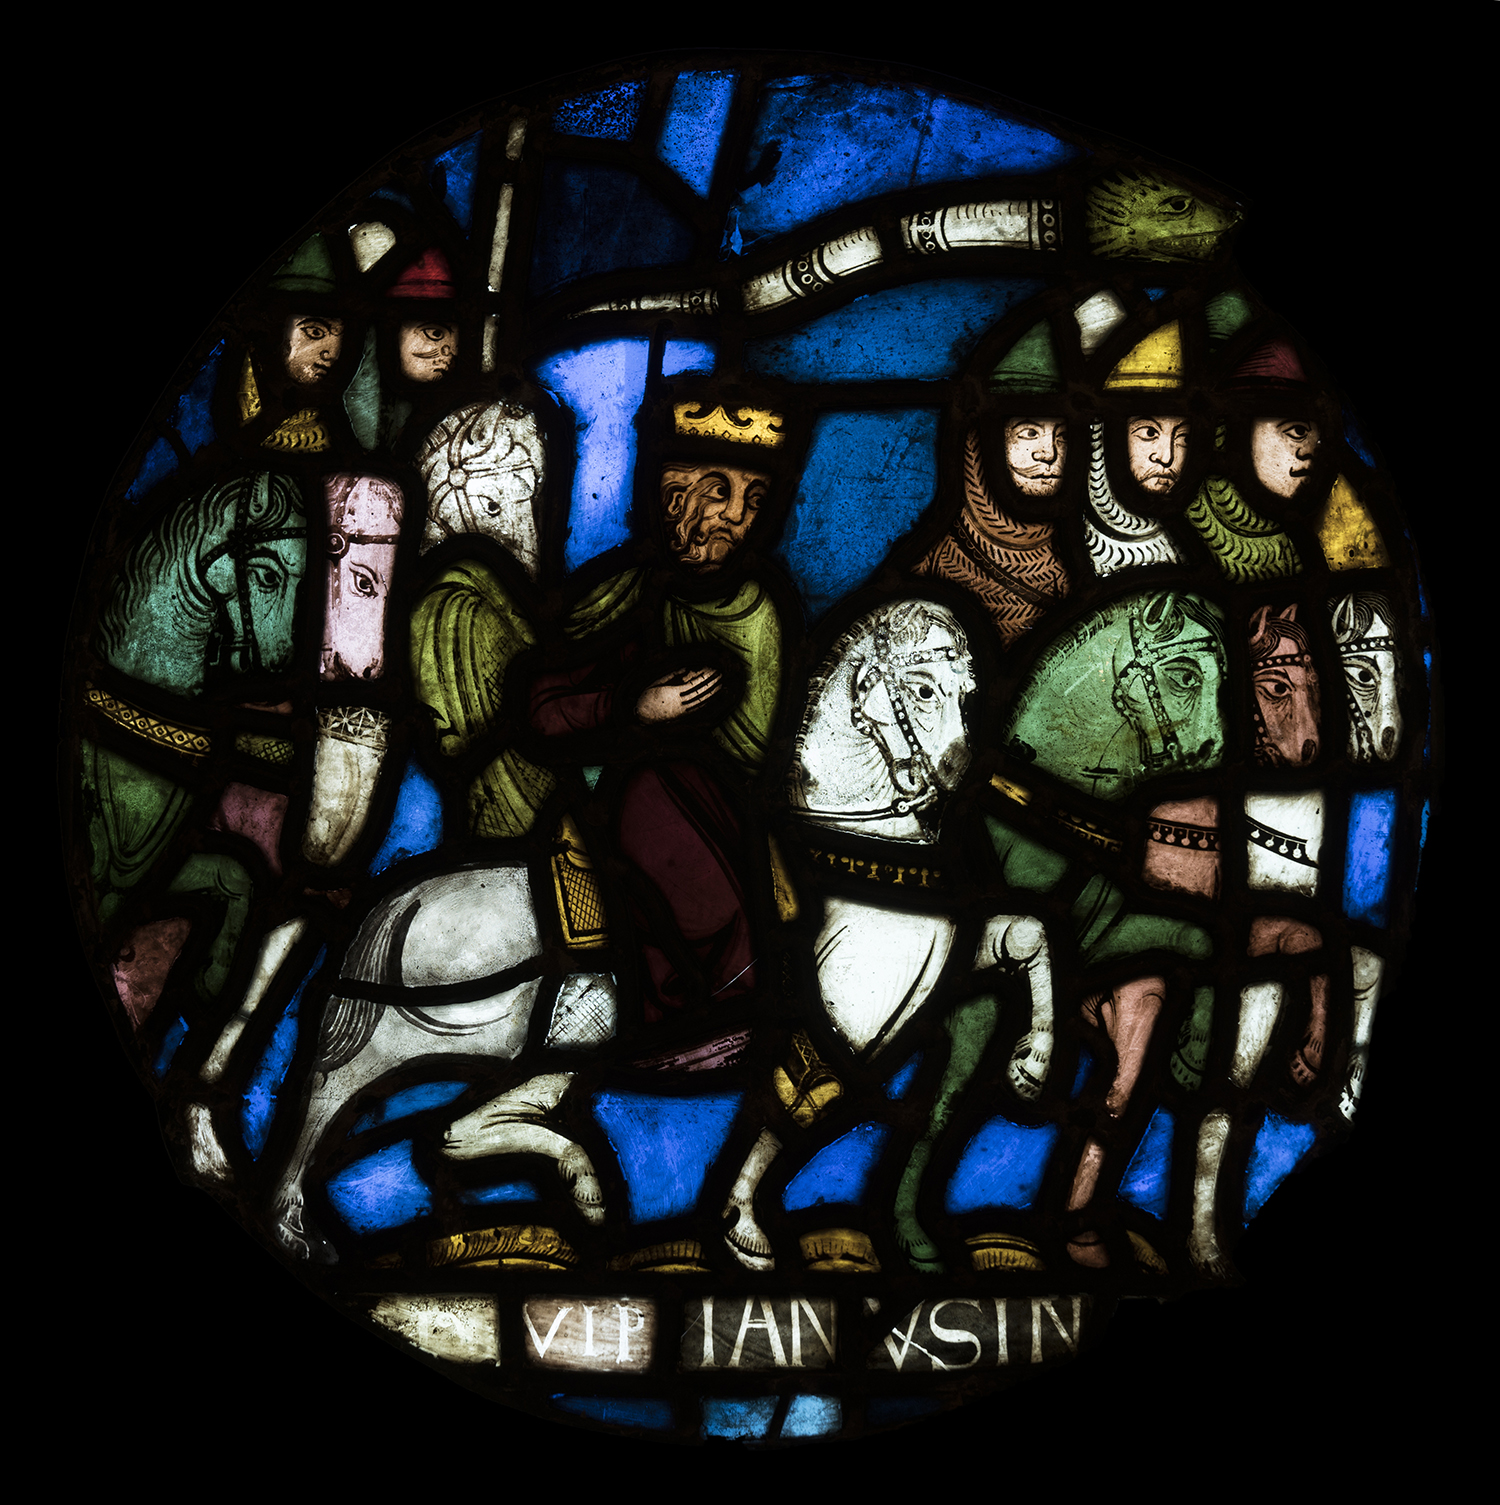 Figure 11:Charlemagne (?) Leads Soldiers in the Holy Land,stained-glass panel from the Royal Abbey Church of Saint-Denis, outside Paris, France, c. 1150 (03.SG.156).